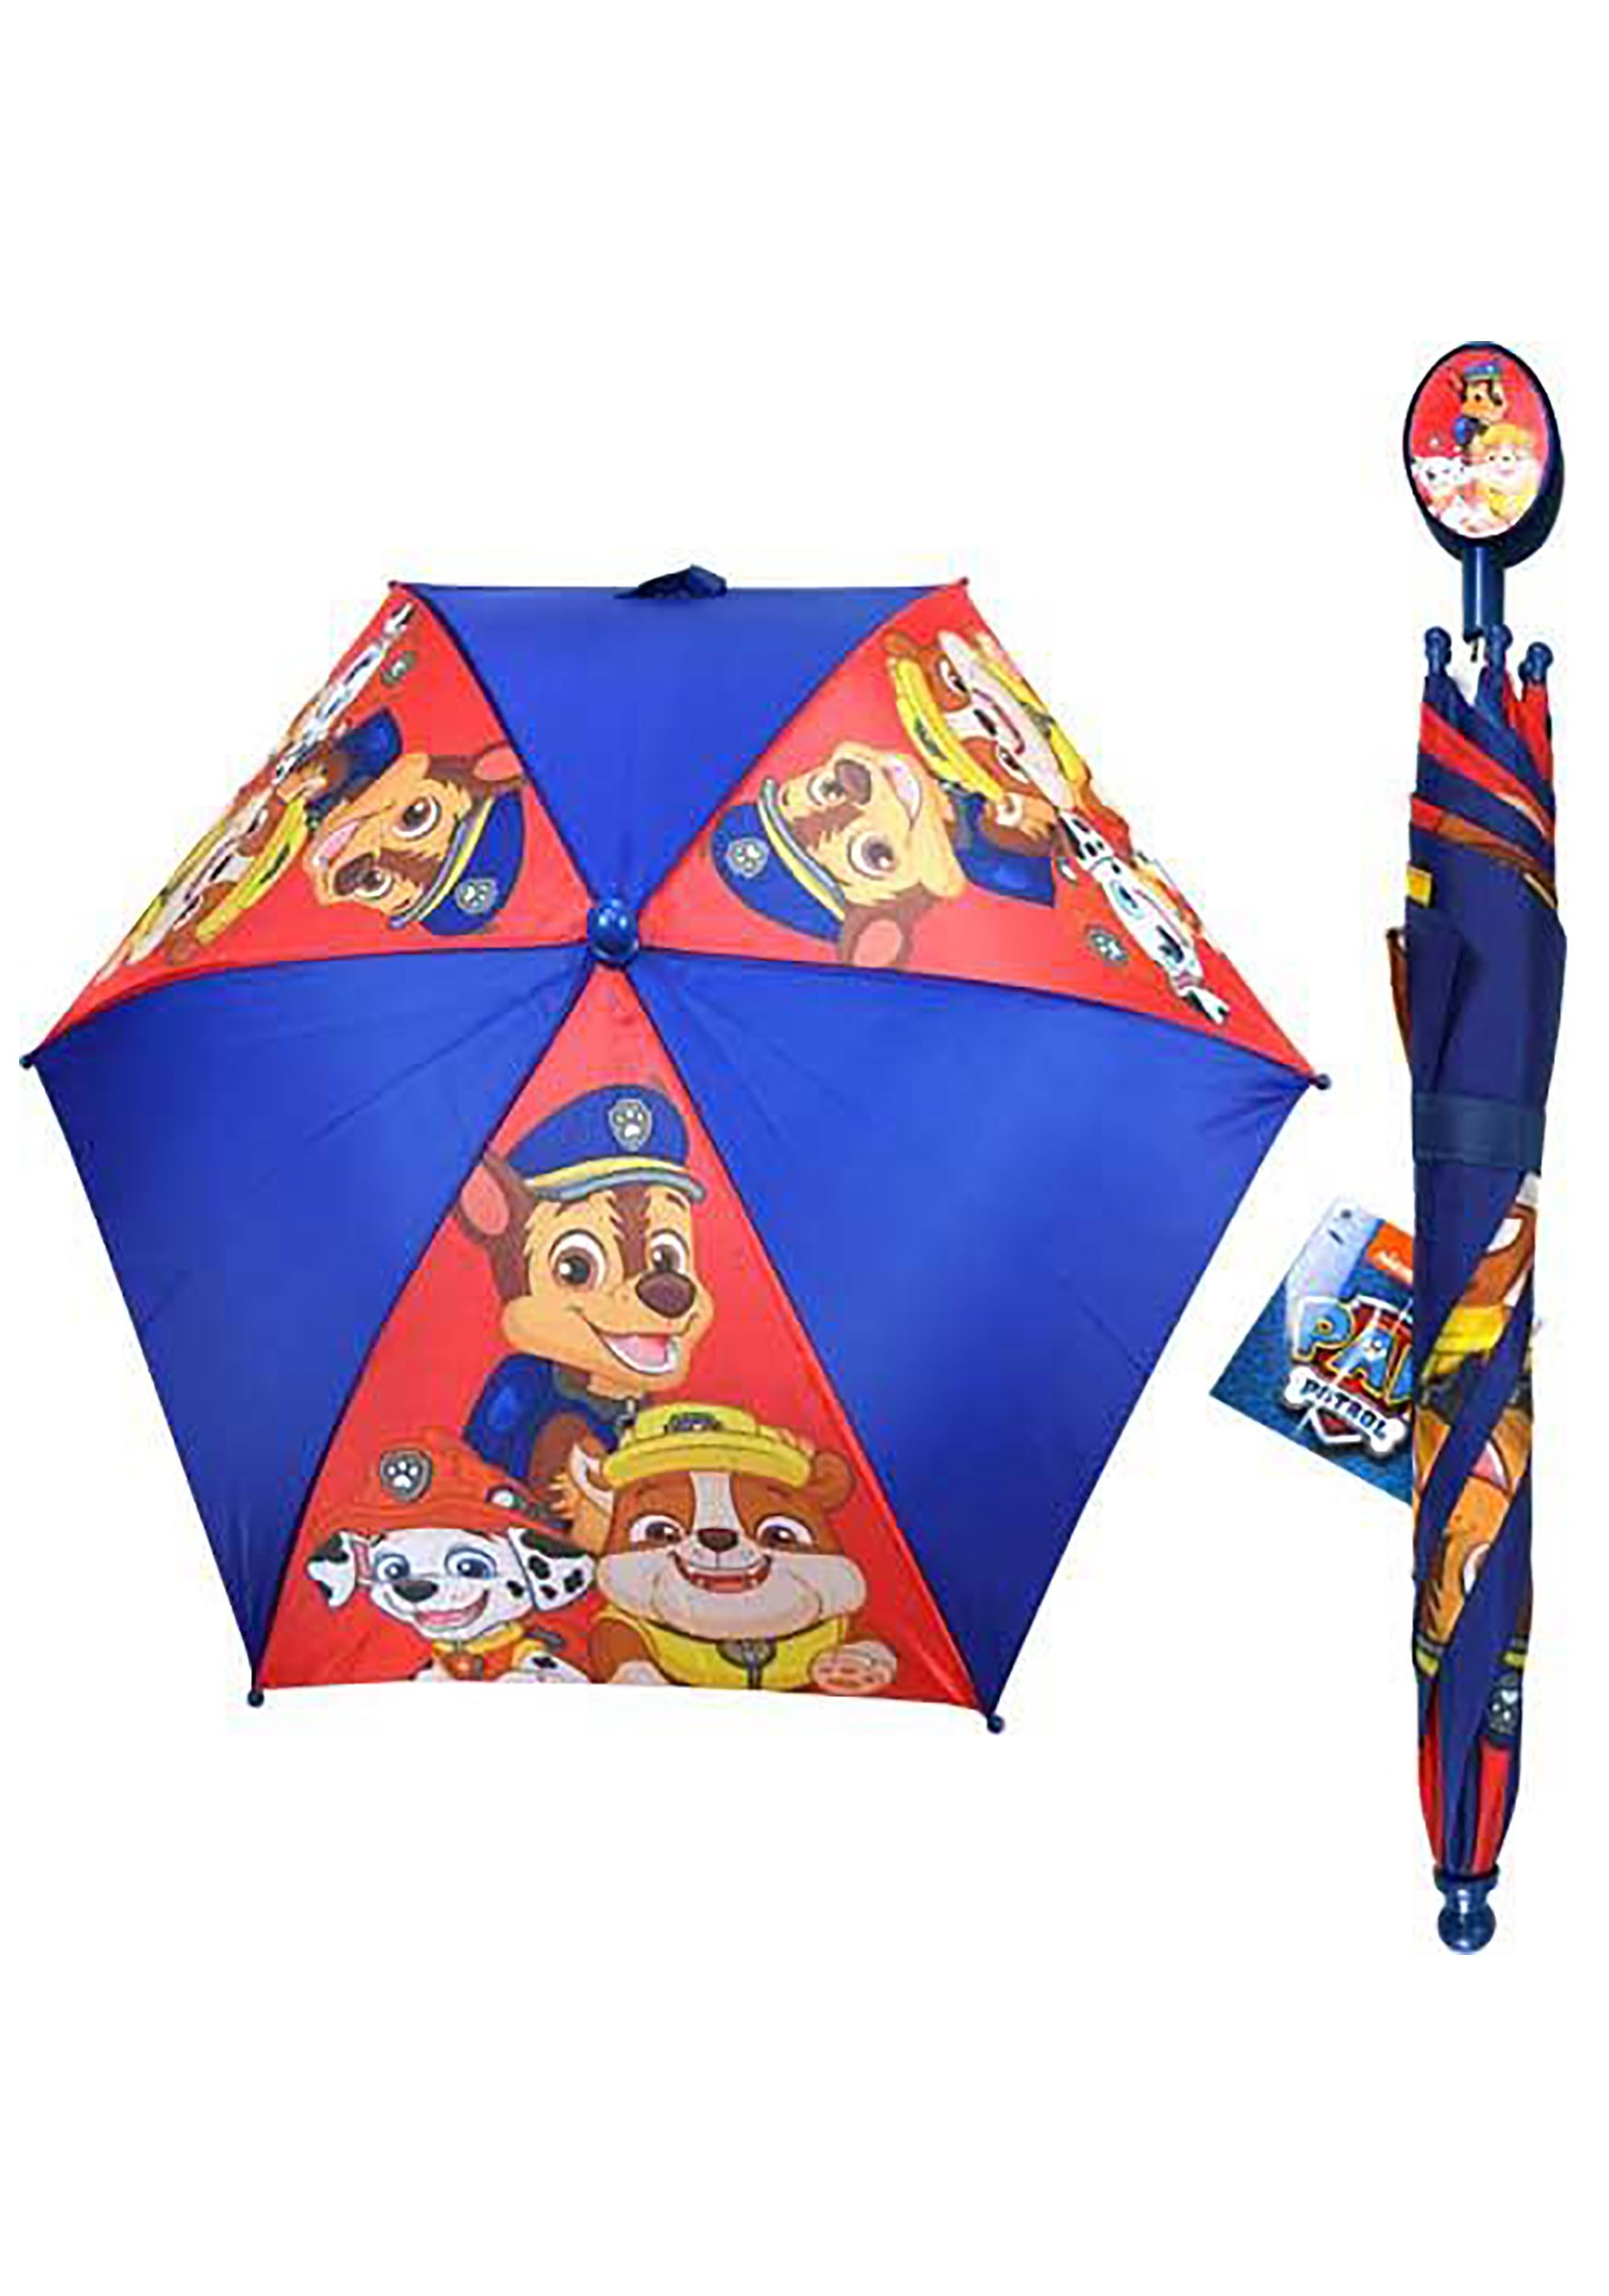 Disney Incredibles 2 Molded Handle Umbrella for Kids Licensed Product